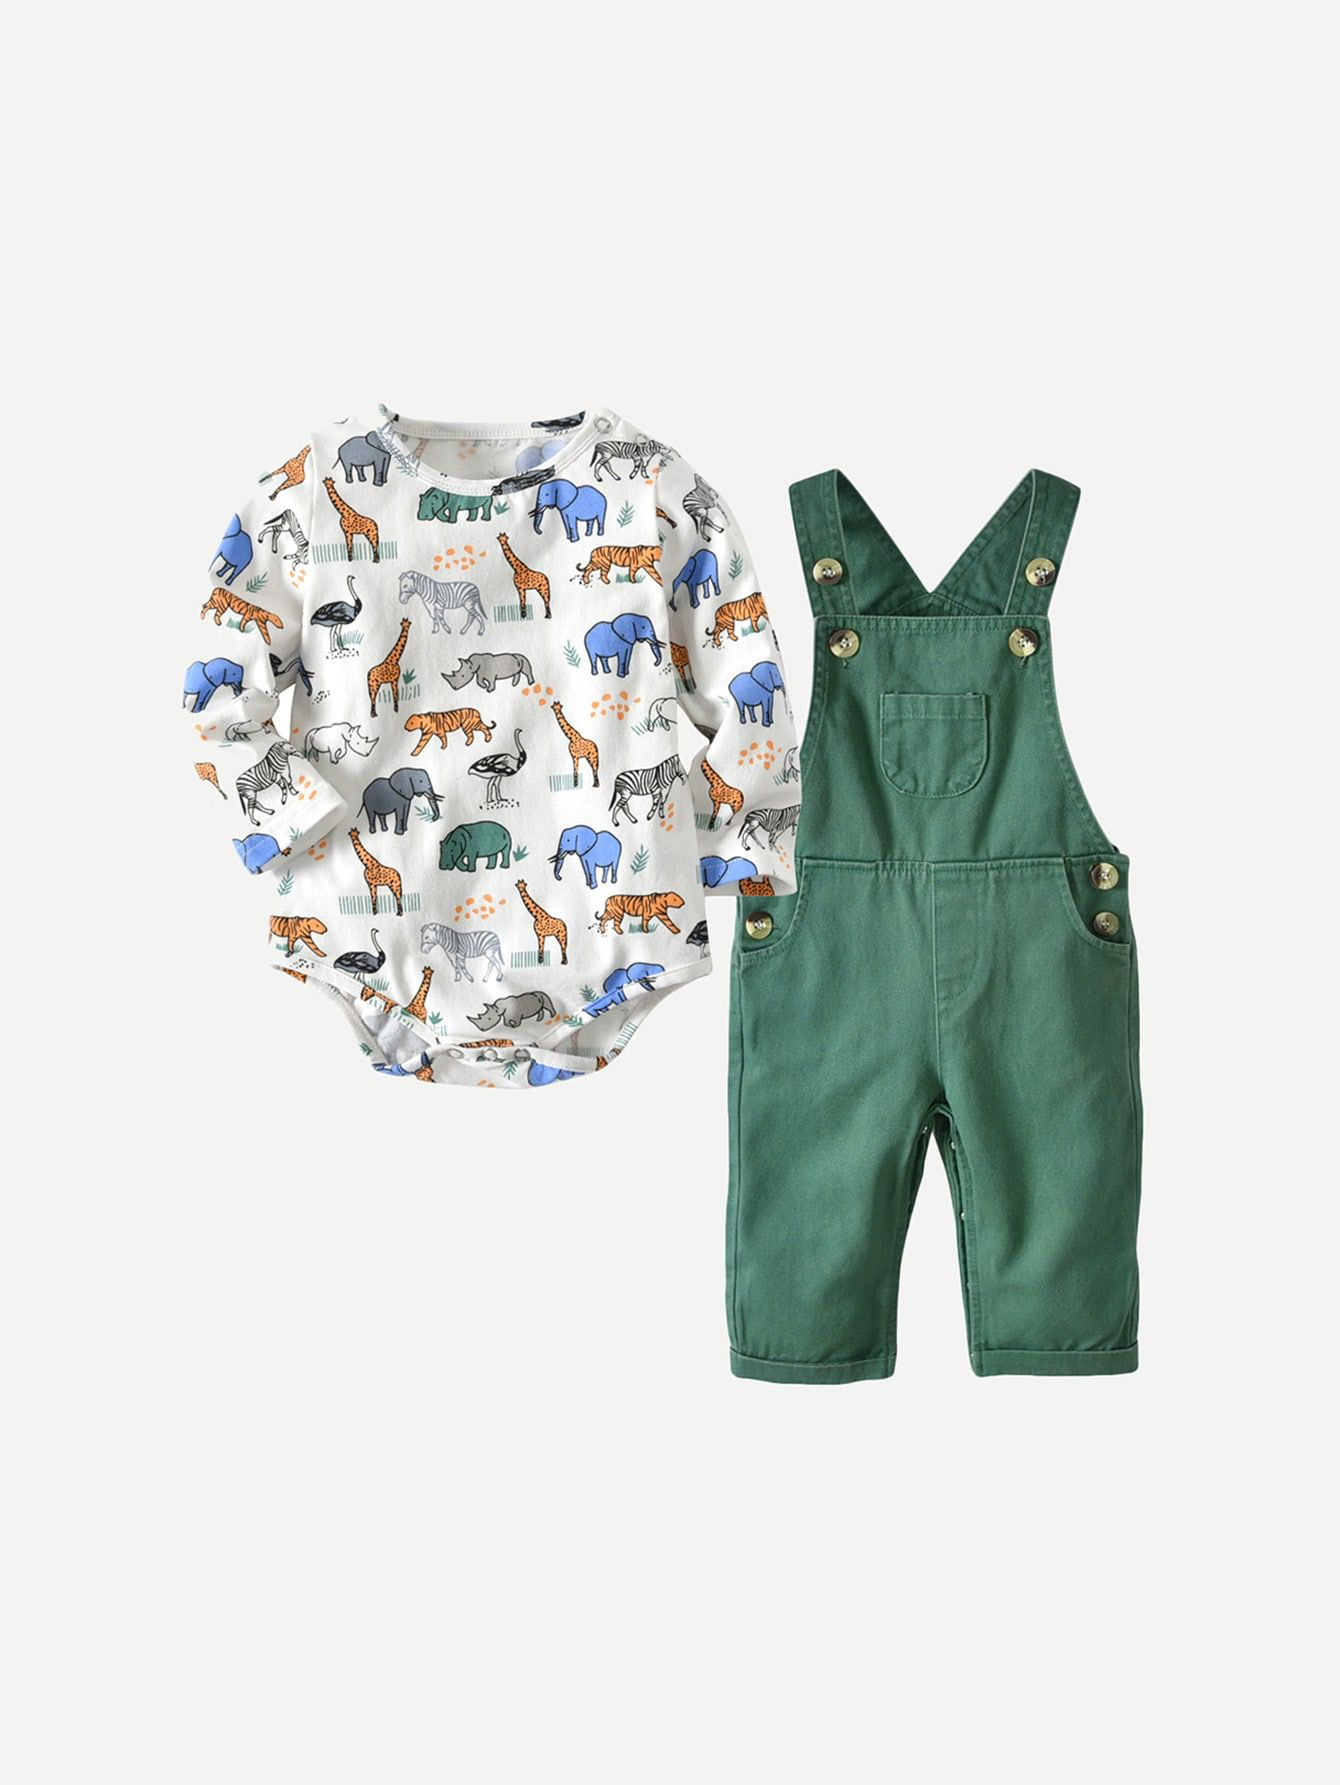 Toddler Boys Animal Print Jumpsuit With Overalls Check out this Toddler Boys  Animal Print Jumpsuit With Overalls on Romwe and explore more to meet your  ... 3d3a92bb40